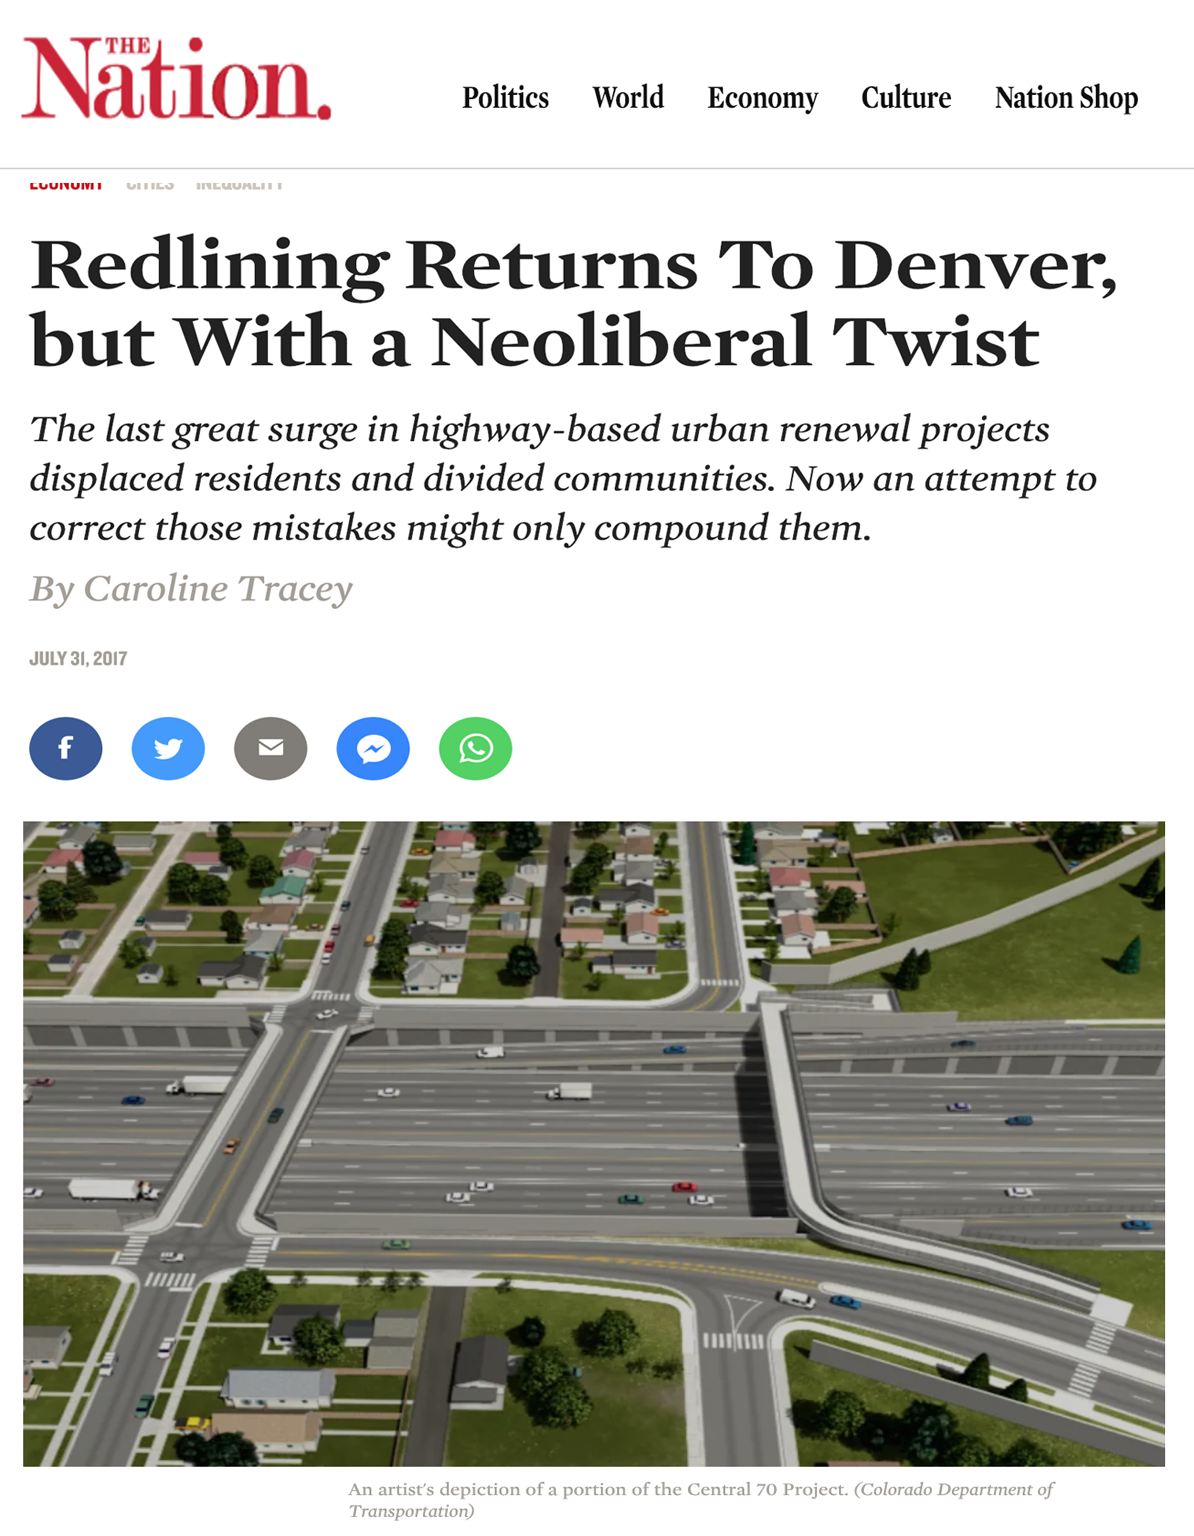 Redlining Returns To Denver, but With a Neoliberal Twist - The last great surge in highway-based urban renewal projects displaced residents and divided communities. Now an attempt to correct those mistakes might only compound them.